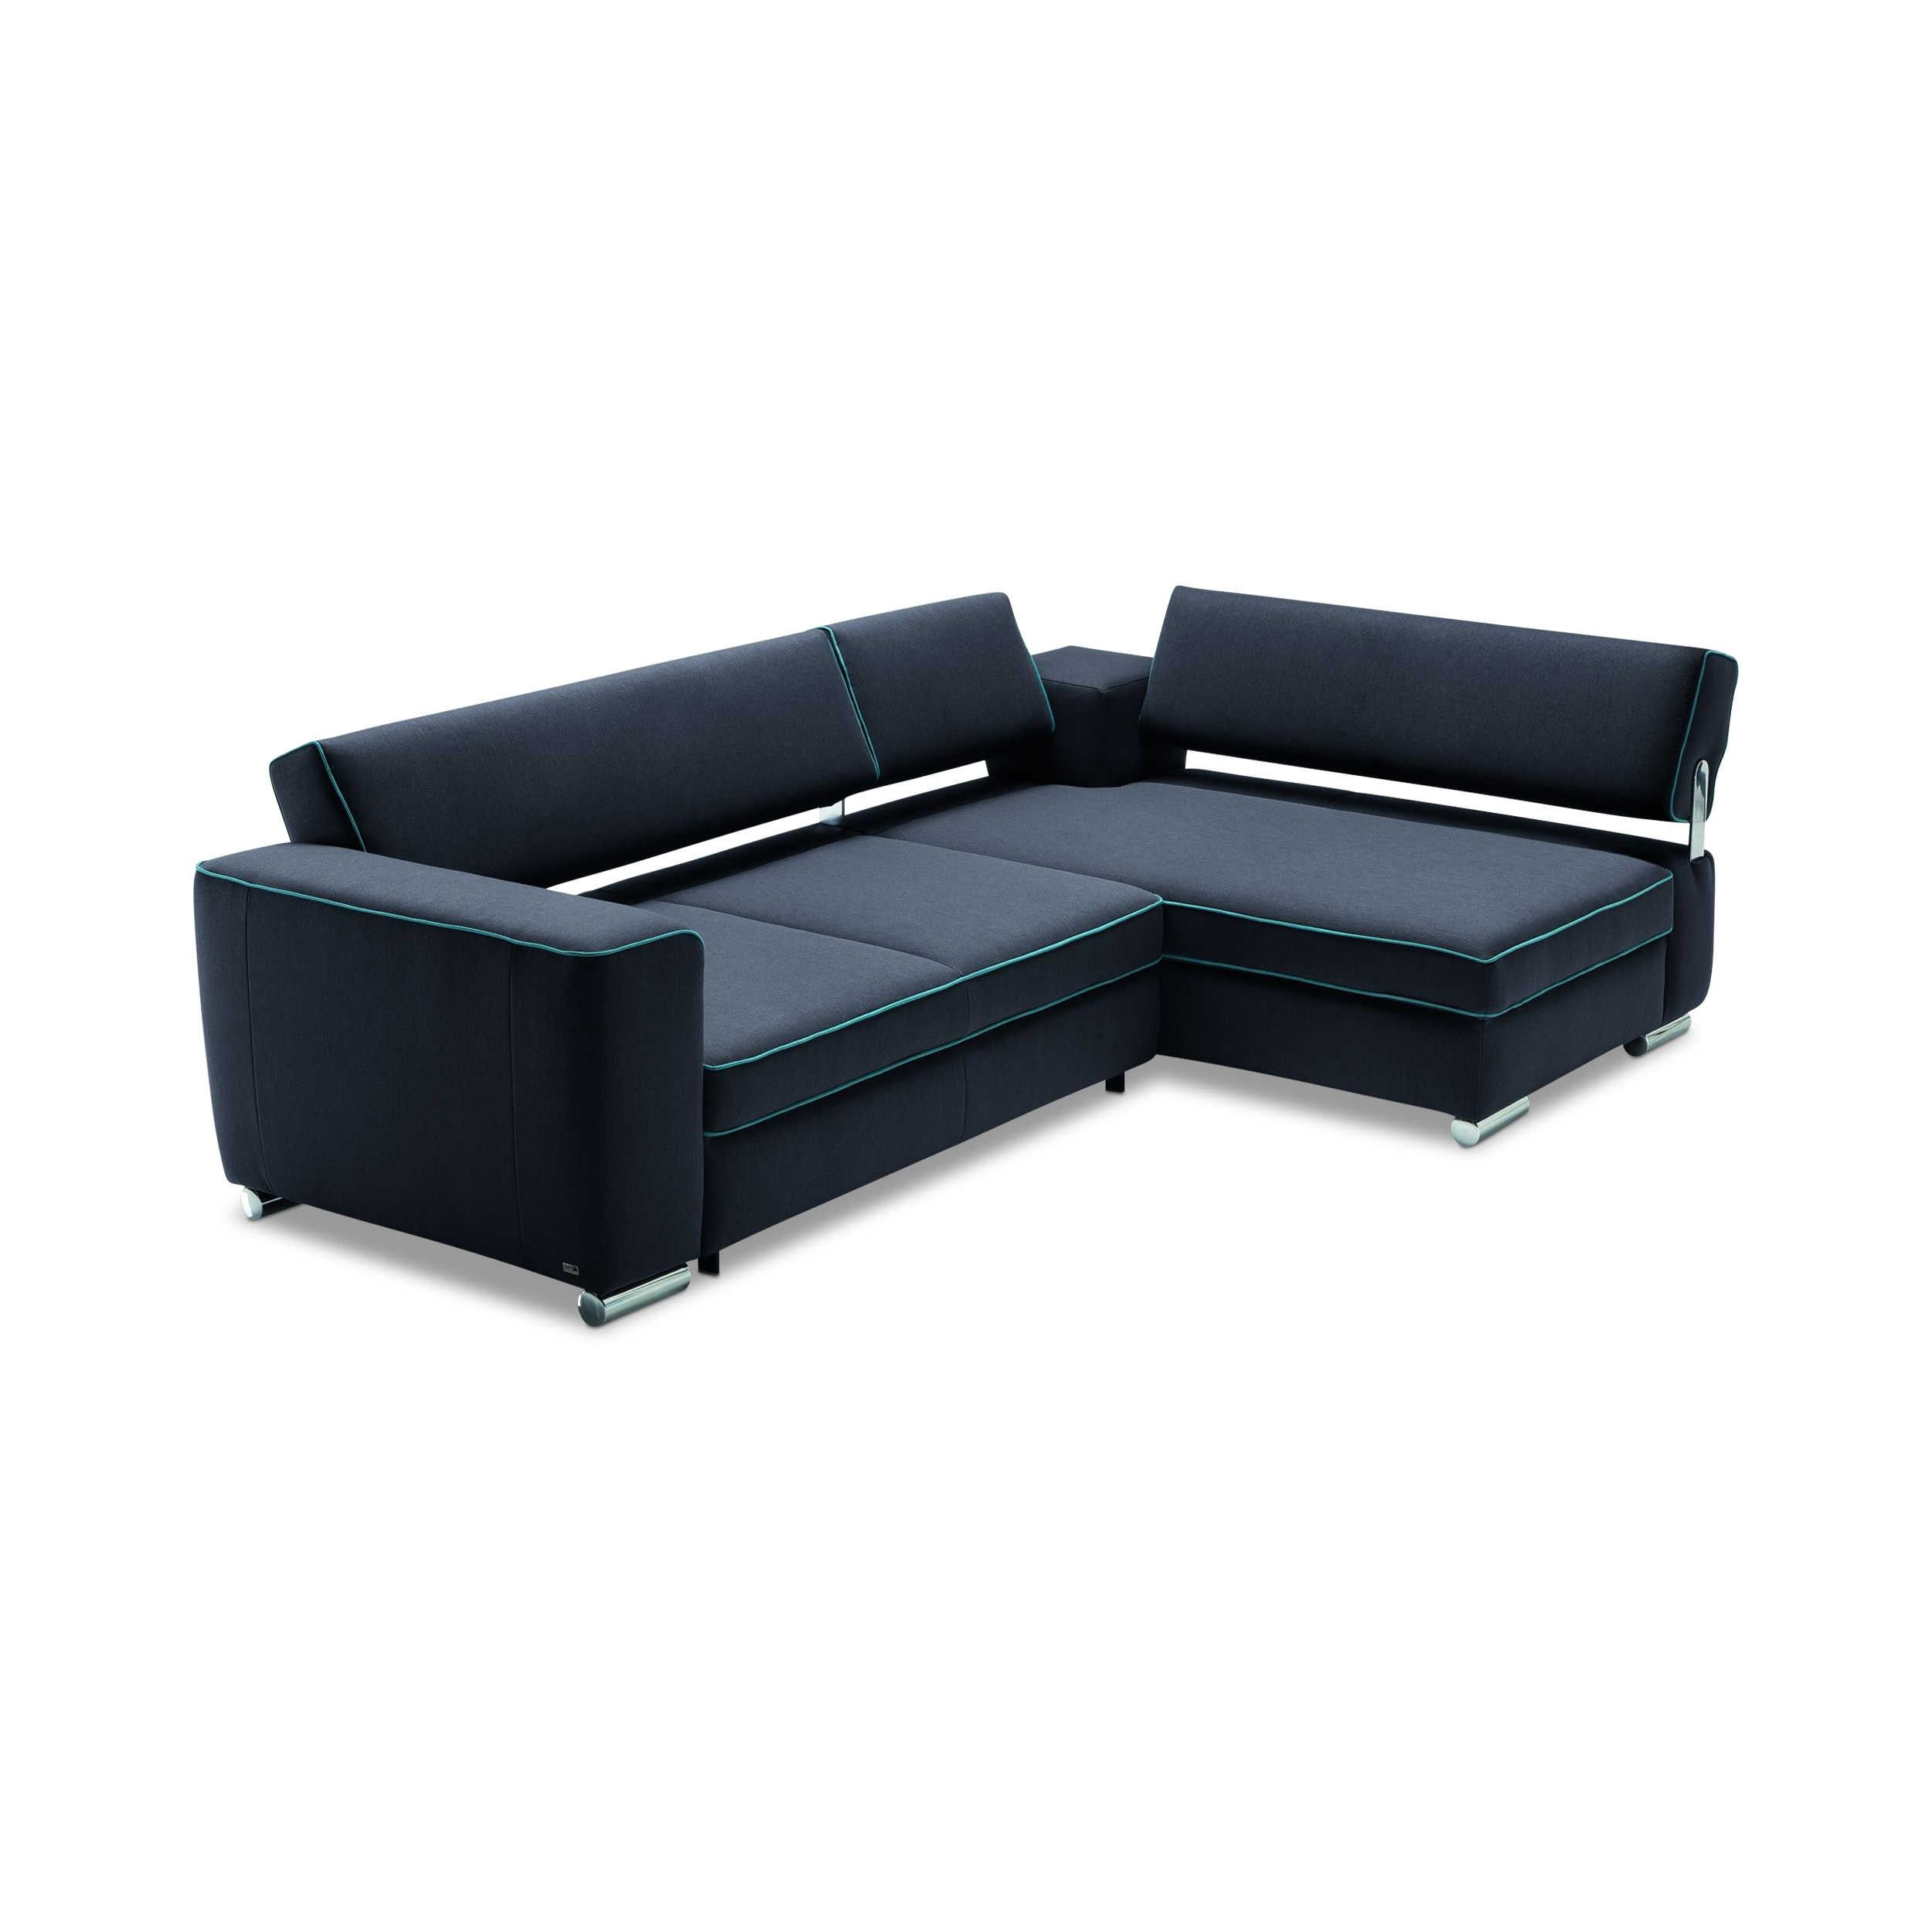 Boxspring Ecksofa Mit Schlaffunktion Boxspring Ecksofa Comox Webstoff Products In 2019 Sofa Couch